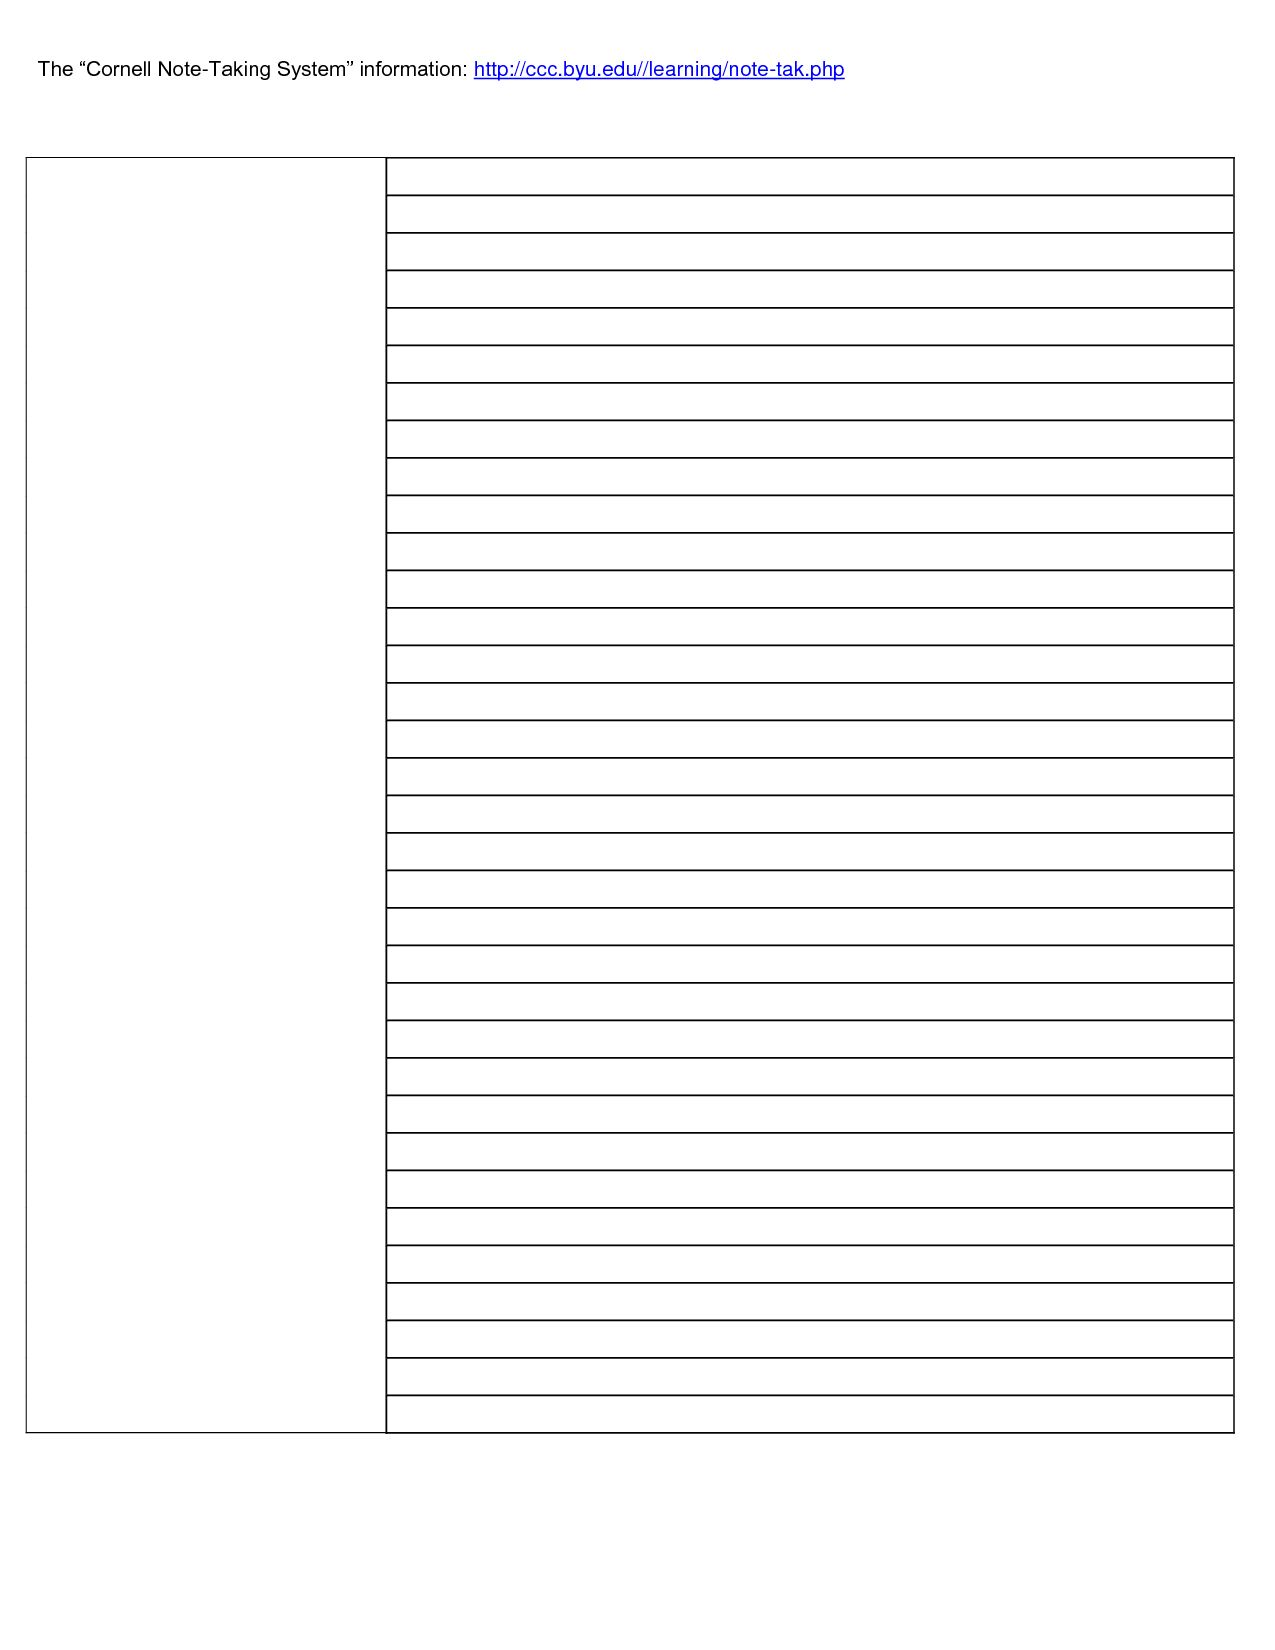 023 Cornell Note Taking Template Word 31836 Research Paper